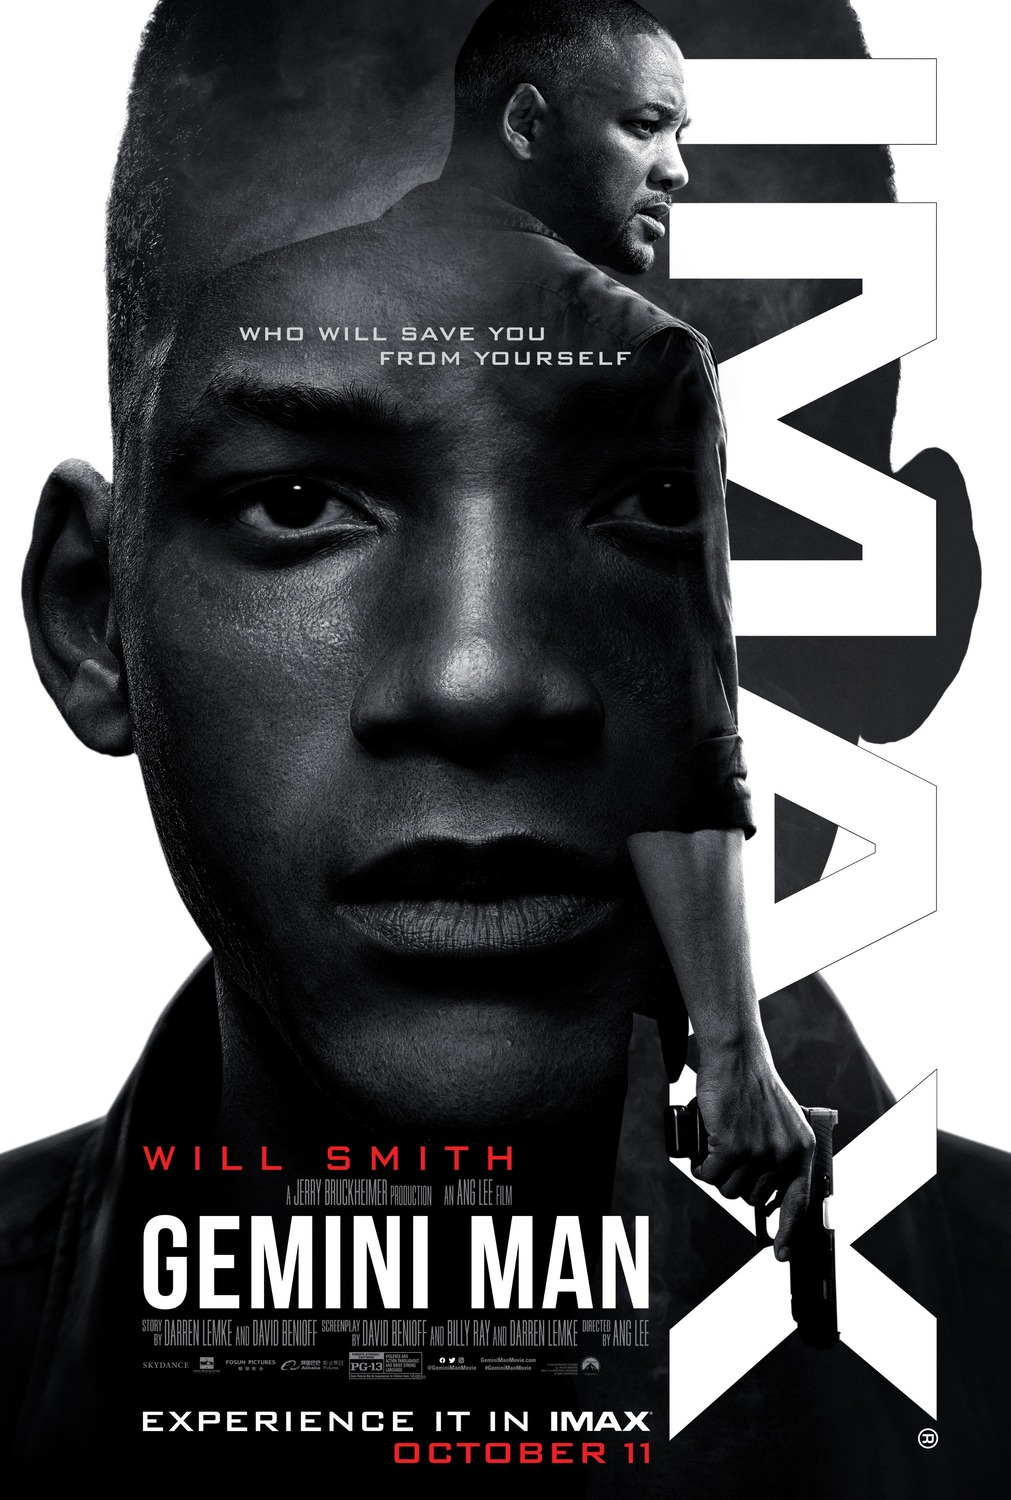 Extra Large Movie Poster Image for Gemini Man (#4 of 6)